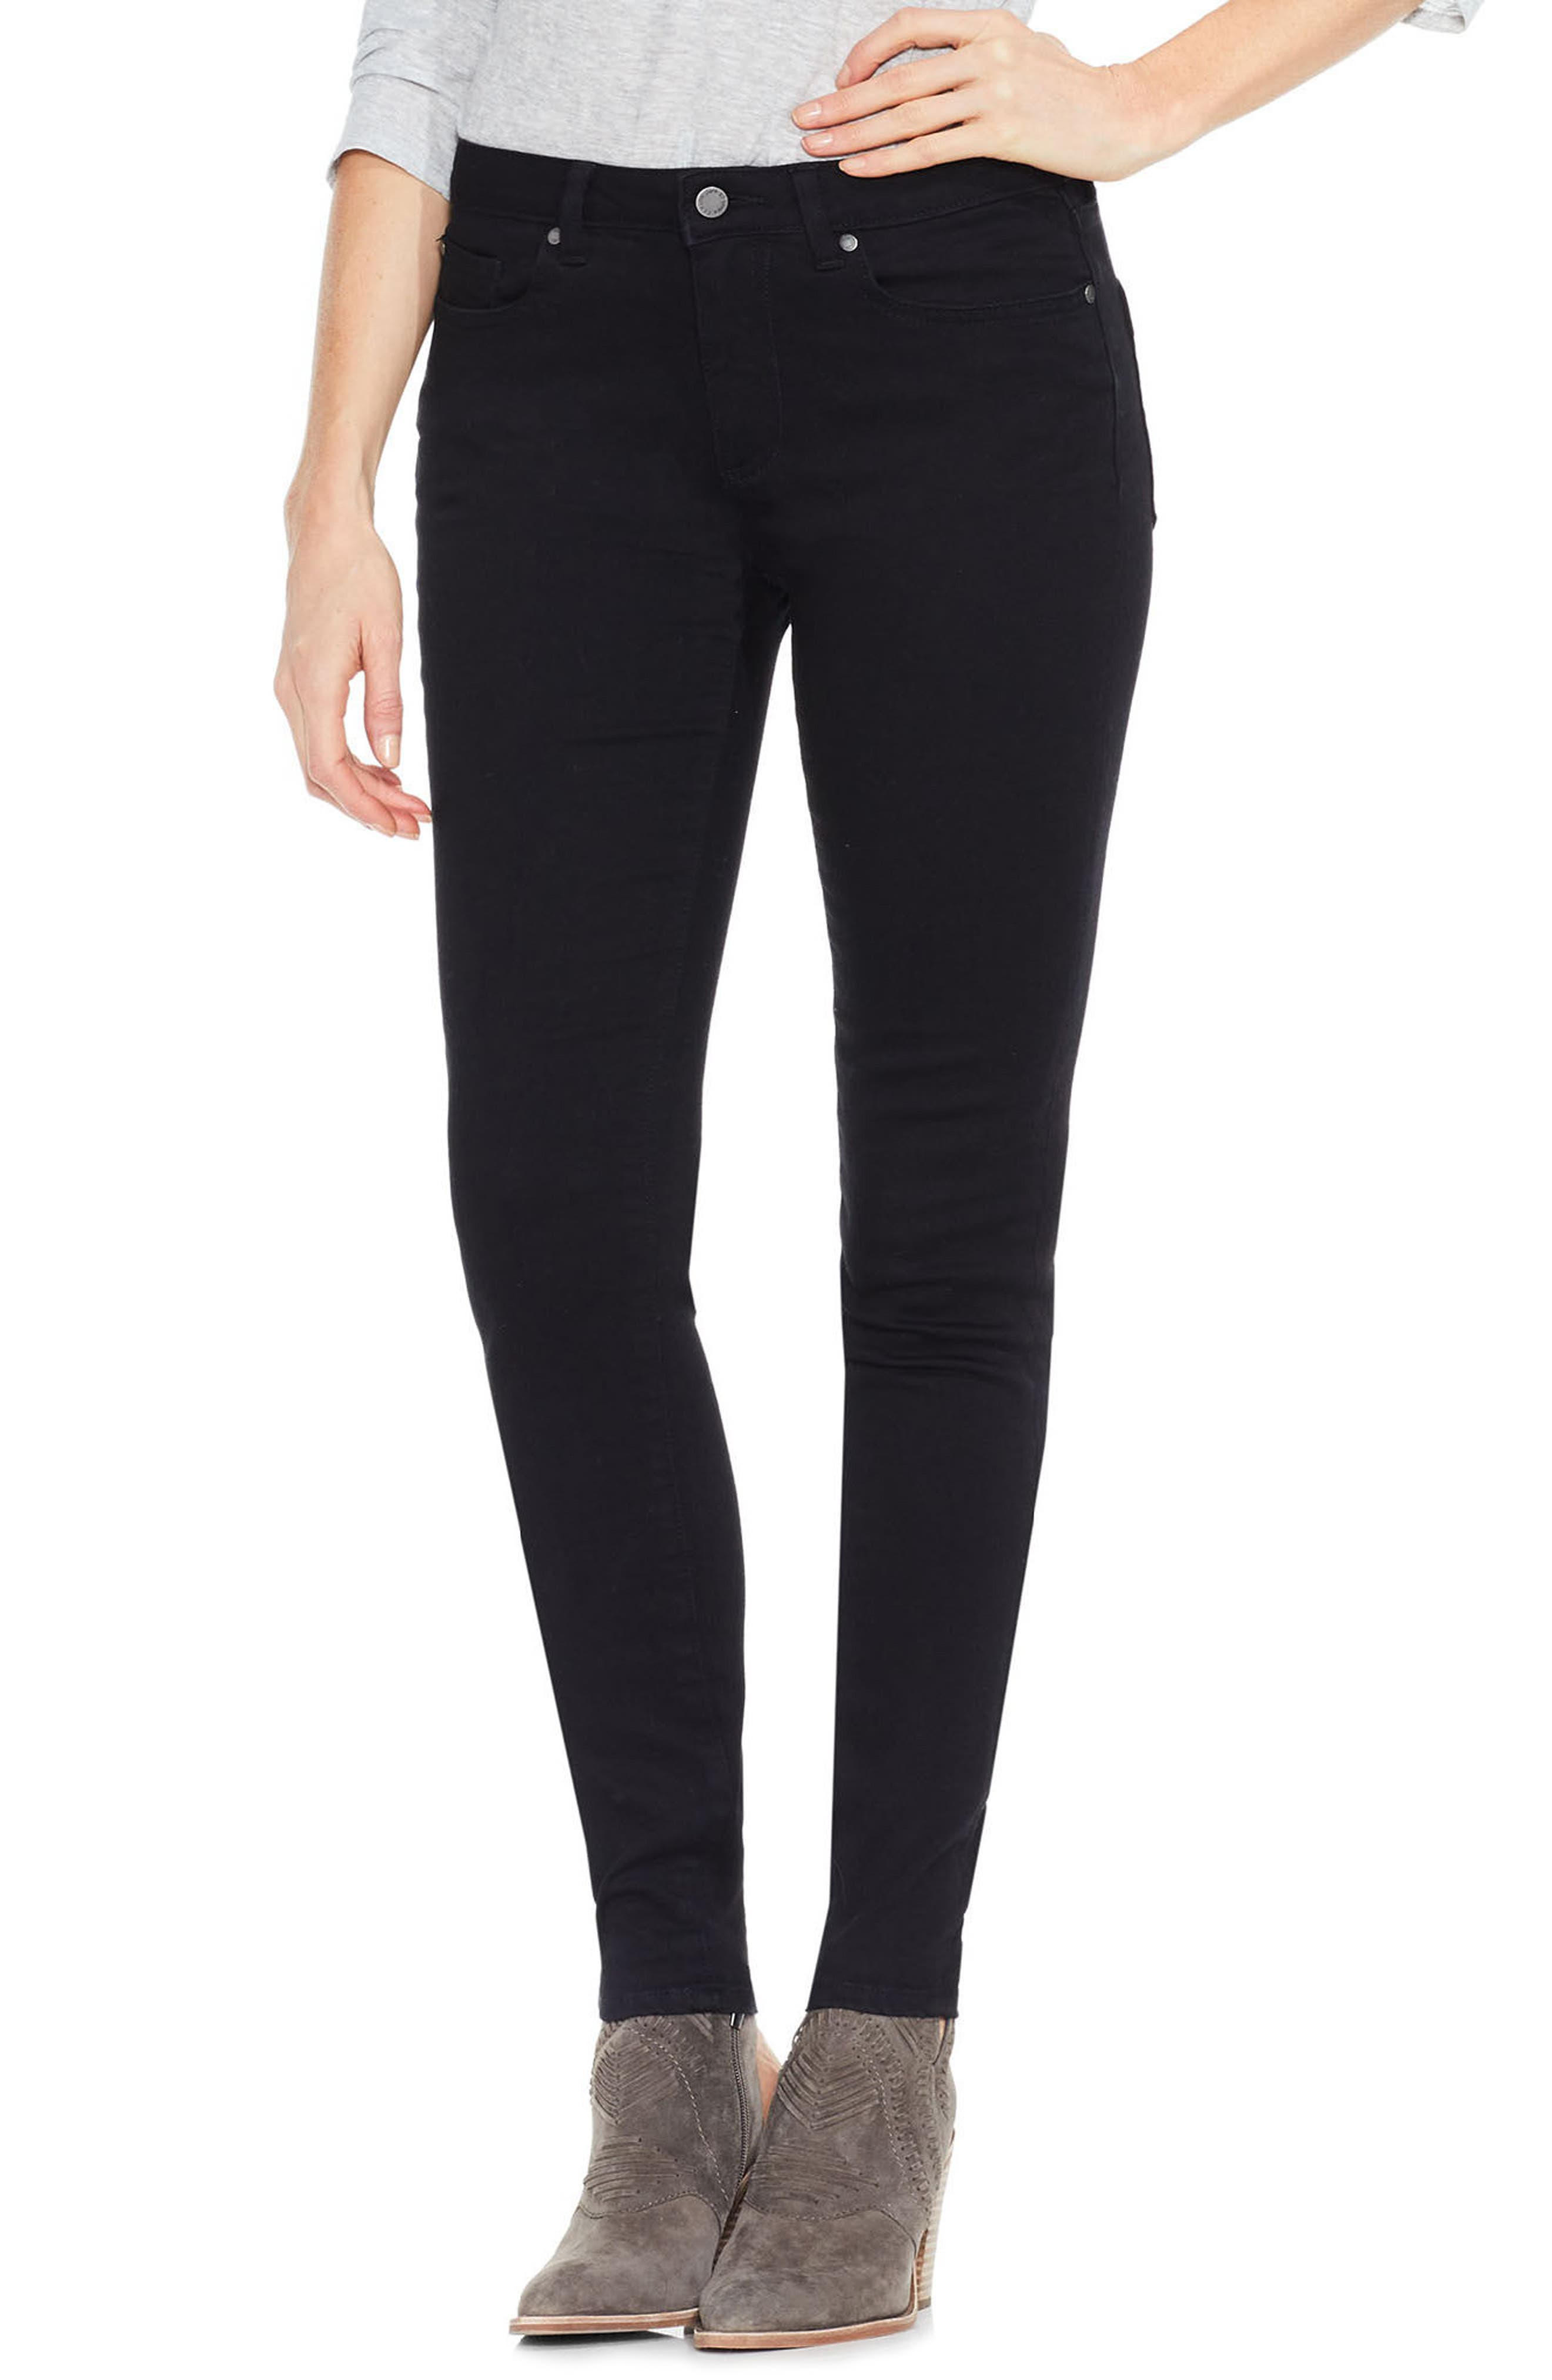 Women's Vince Camuto Stretch Skinny Jeans